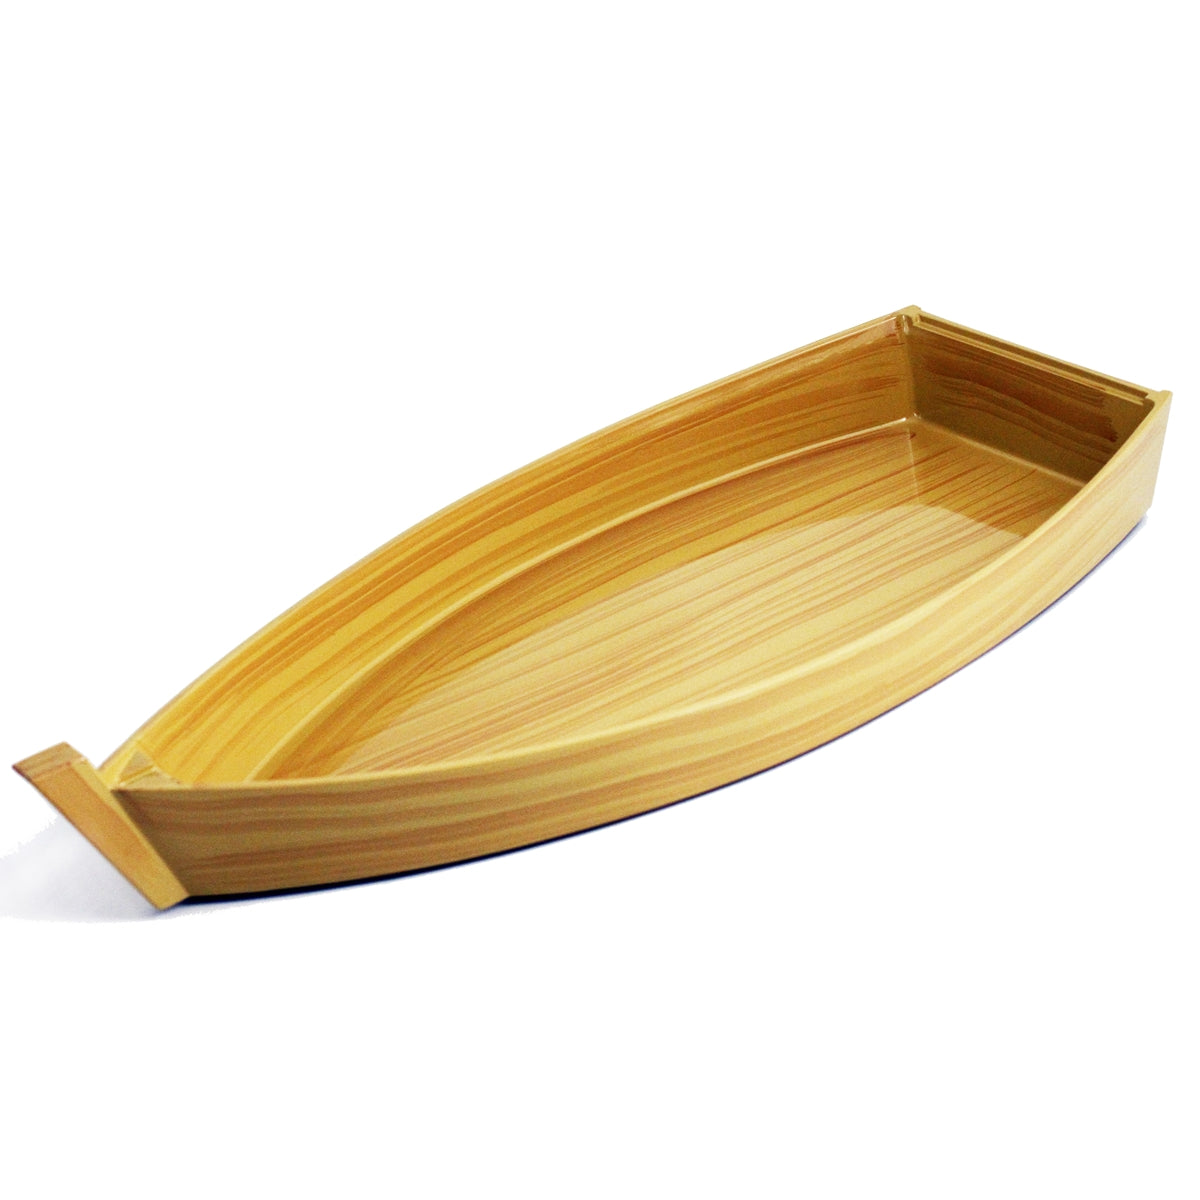 Sushi Serving Boat Medium